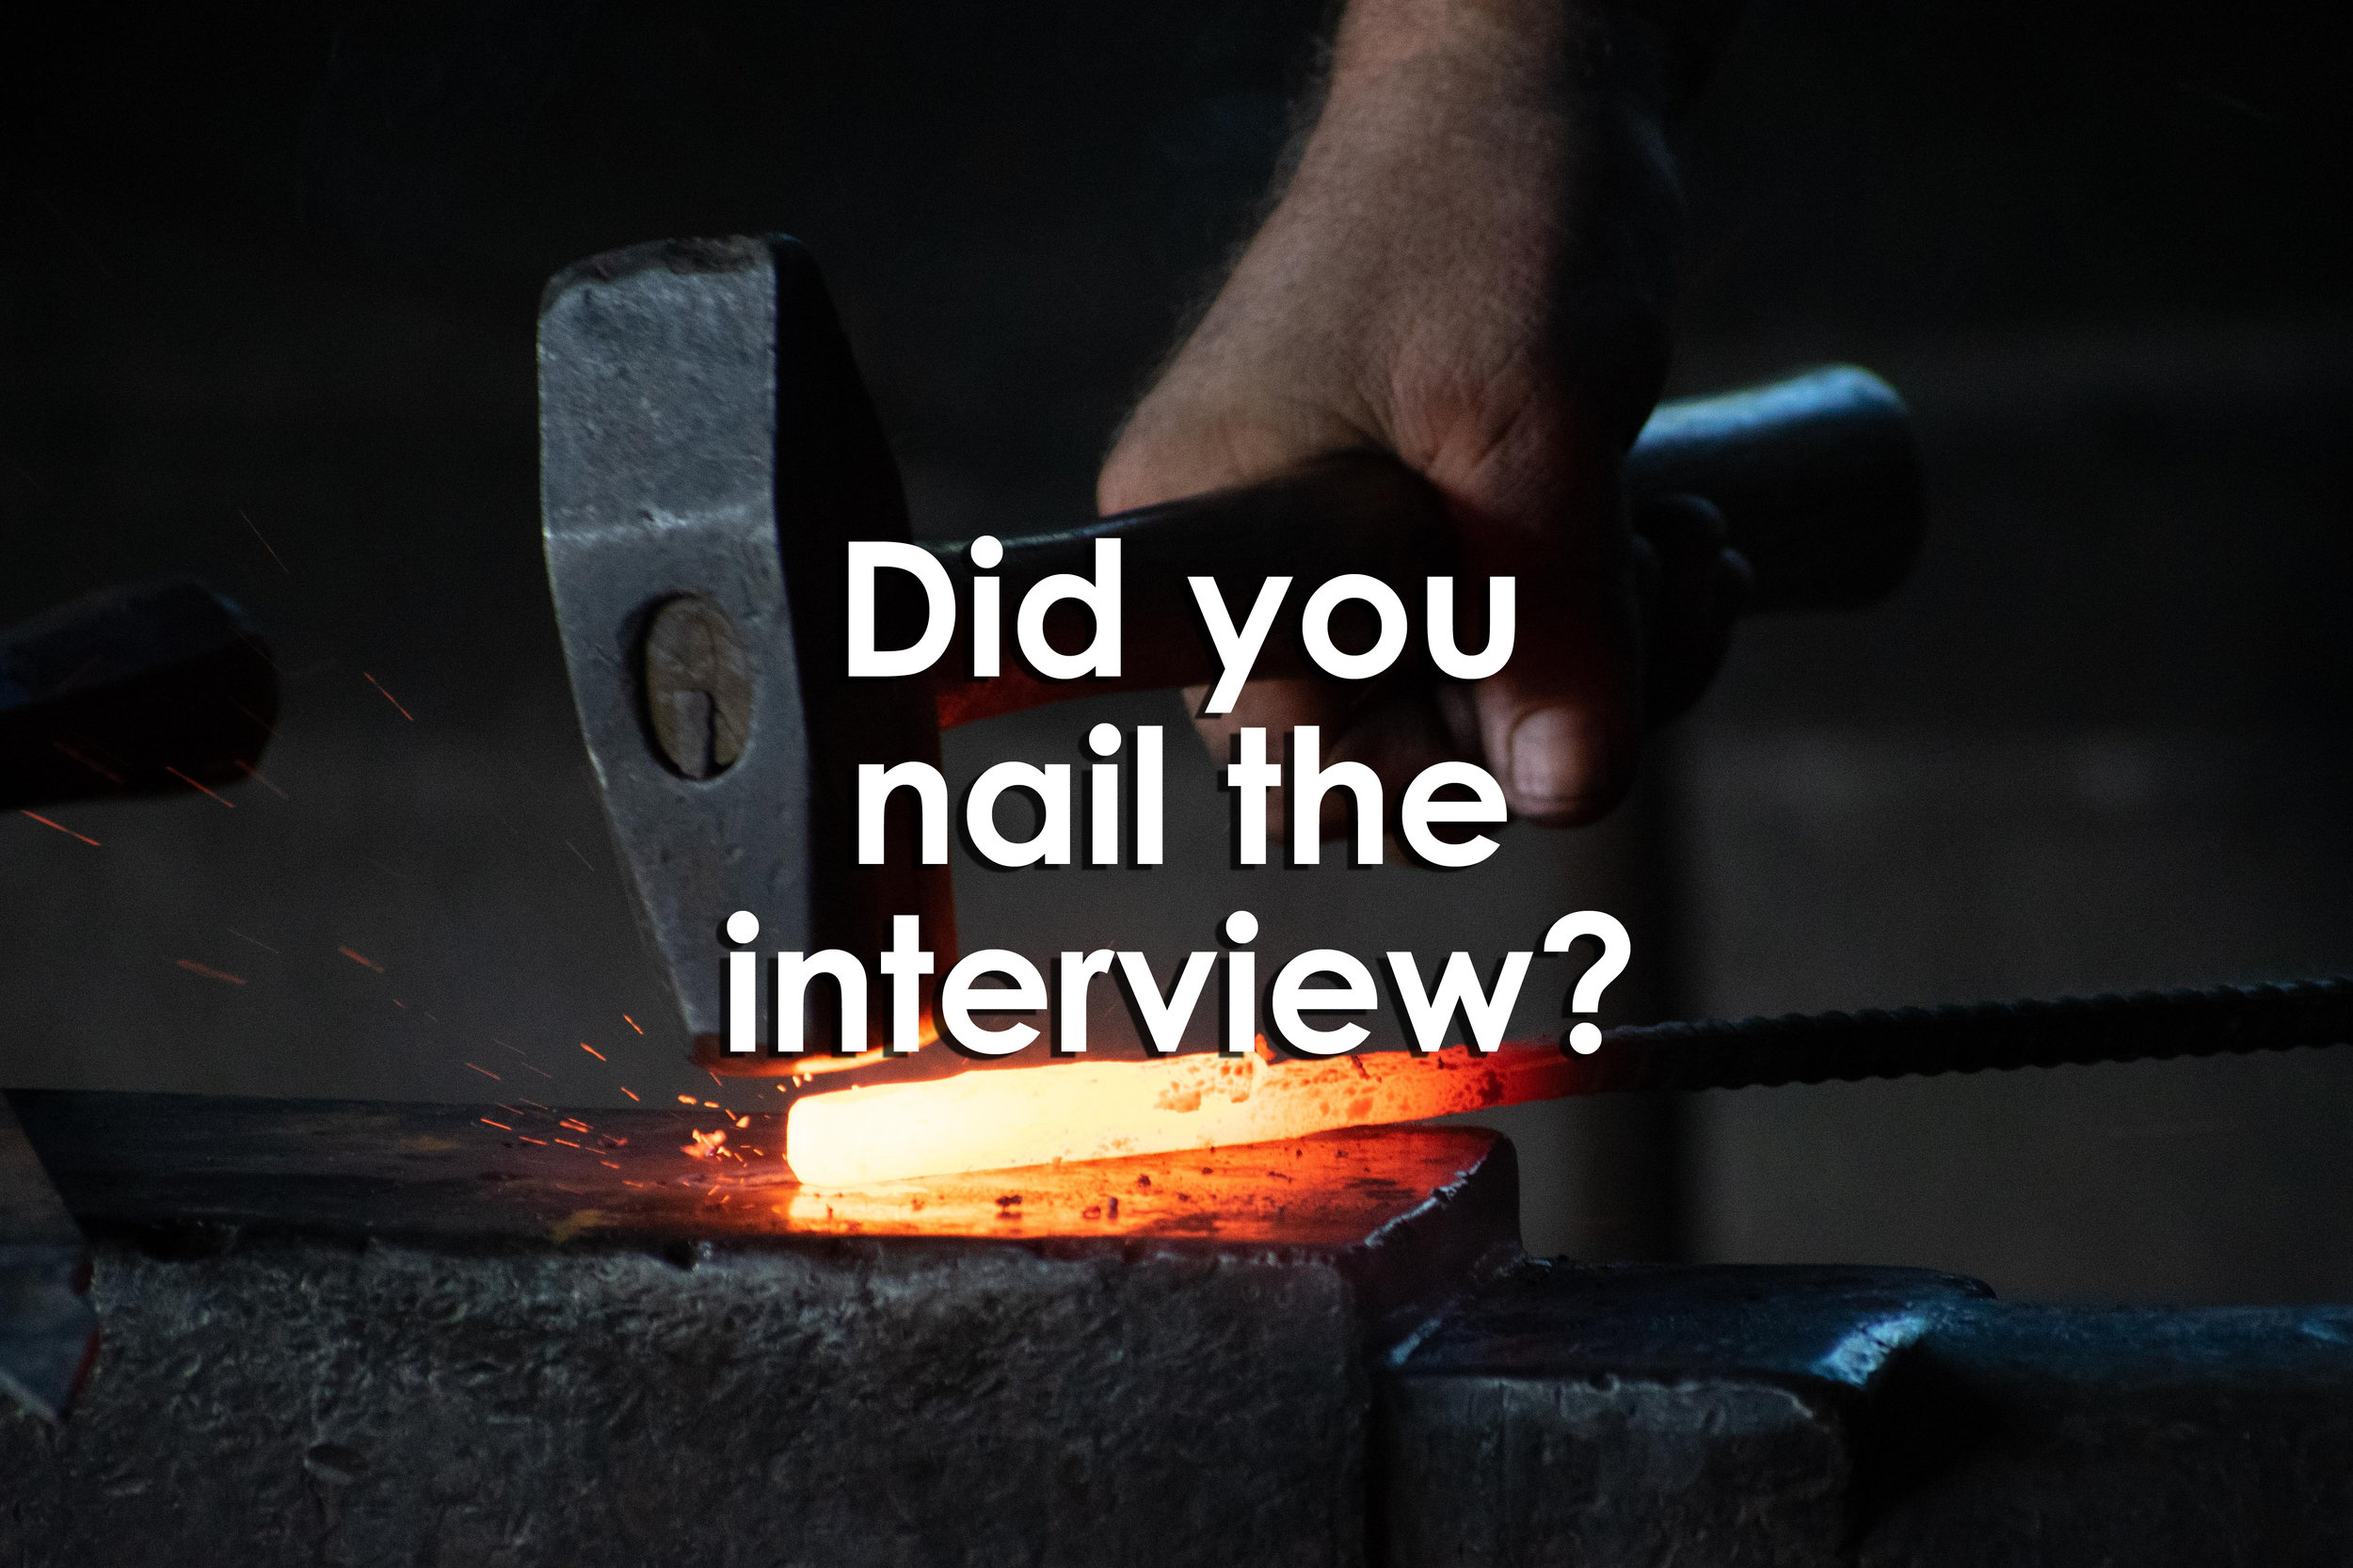 Did you nail the interview?